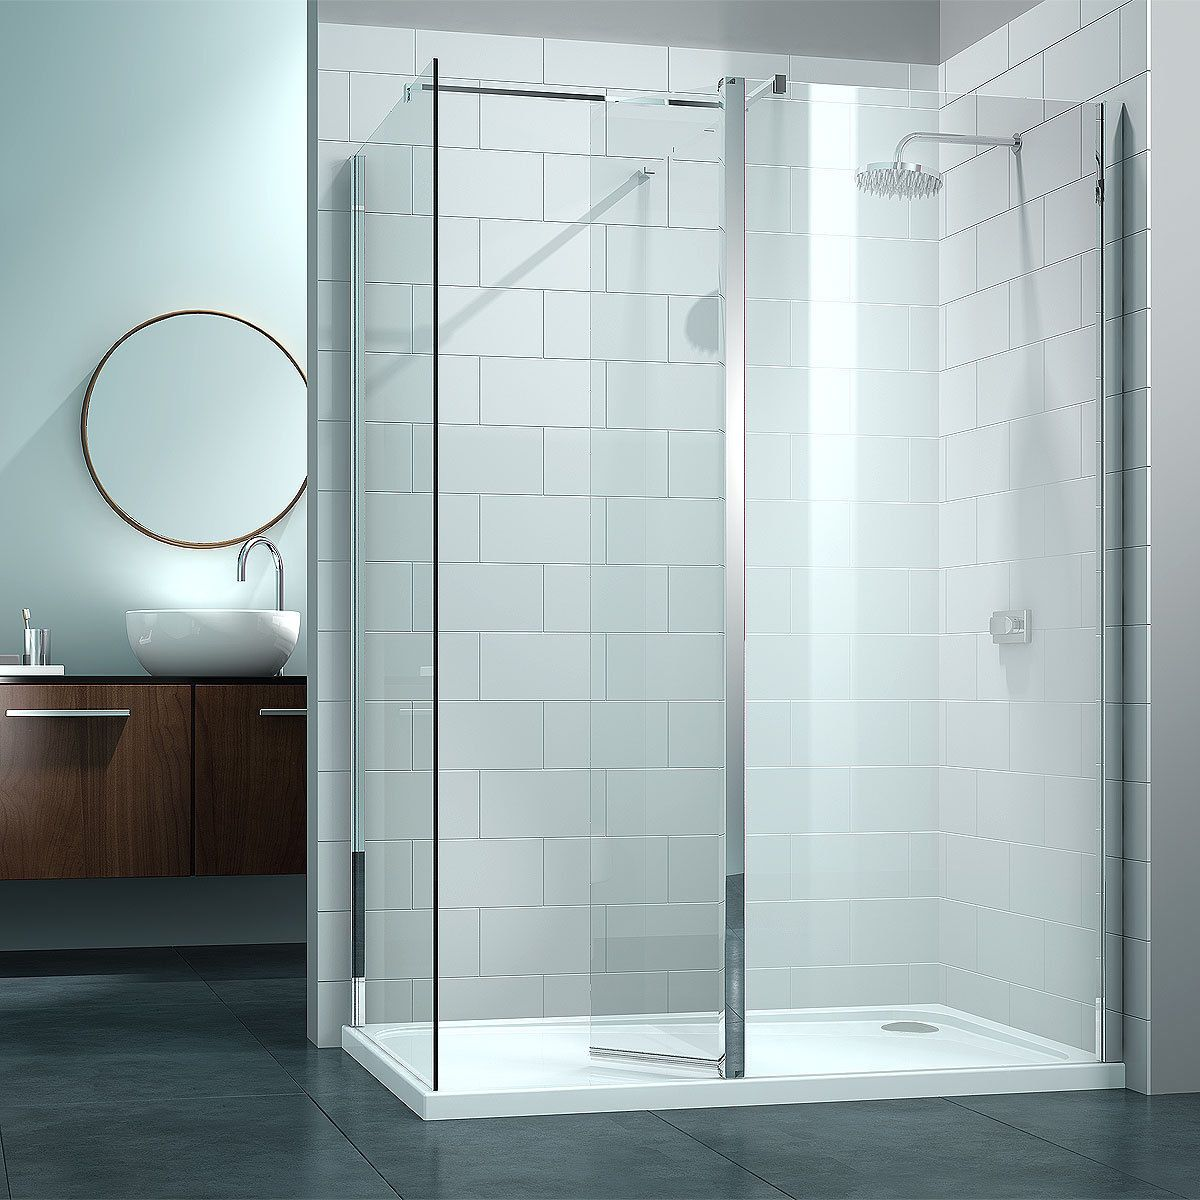 Fancy Splash Guard Shower Screen Ideas - Bathtub Ideas - dilata.info